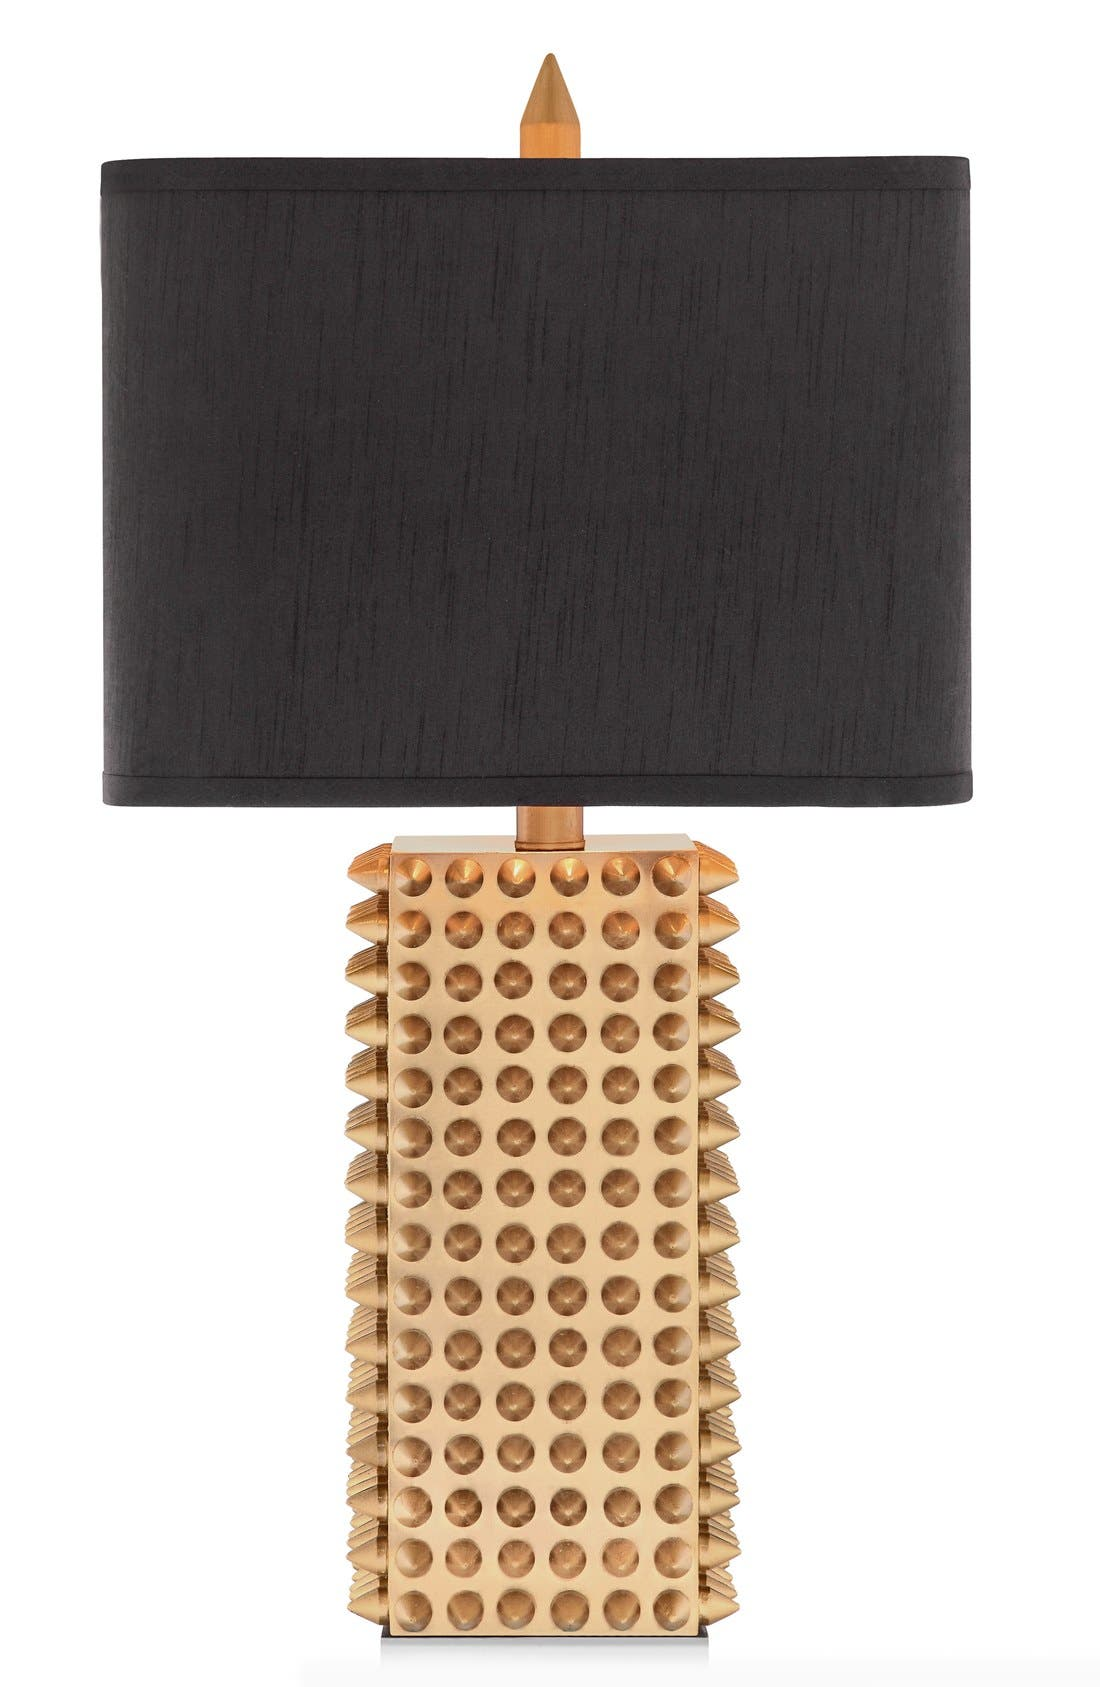 Goldtone Spiked Square Table Lamp,                         Main,                         color, 710